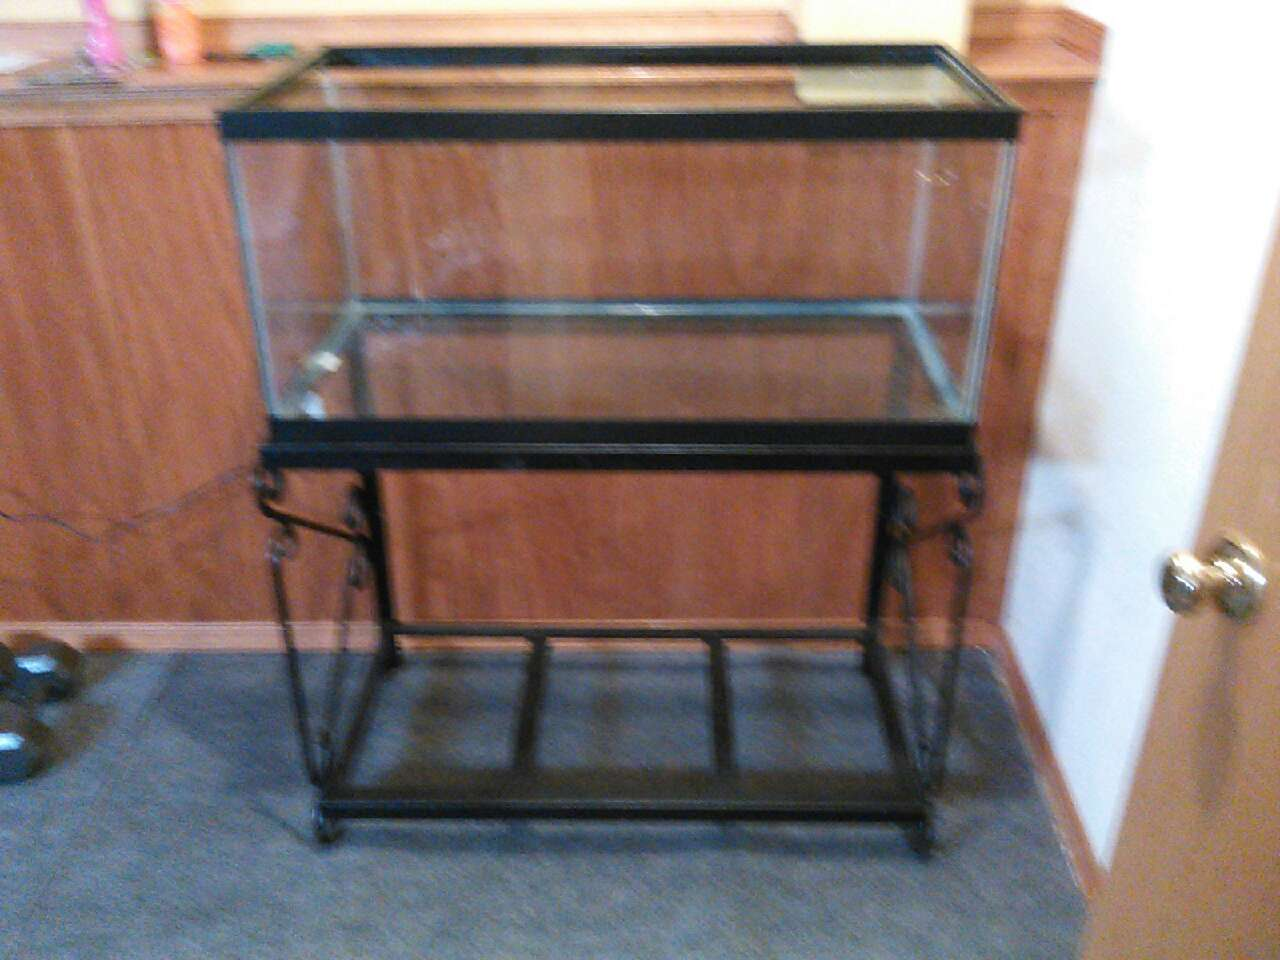 Letgo 40 gal breeder fish tank and doub in rockford il for Double fish tank stand